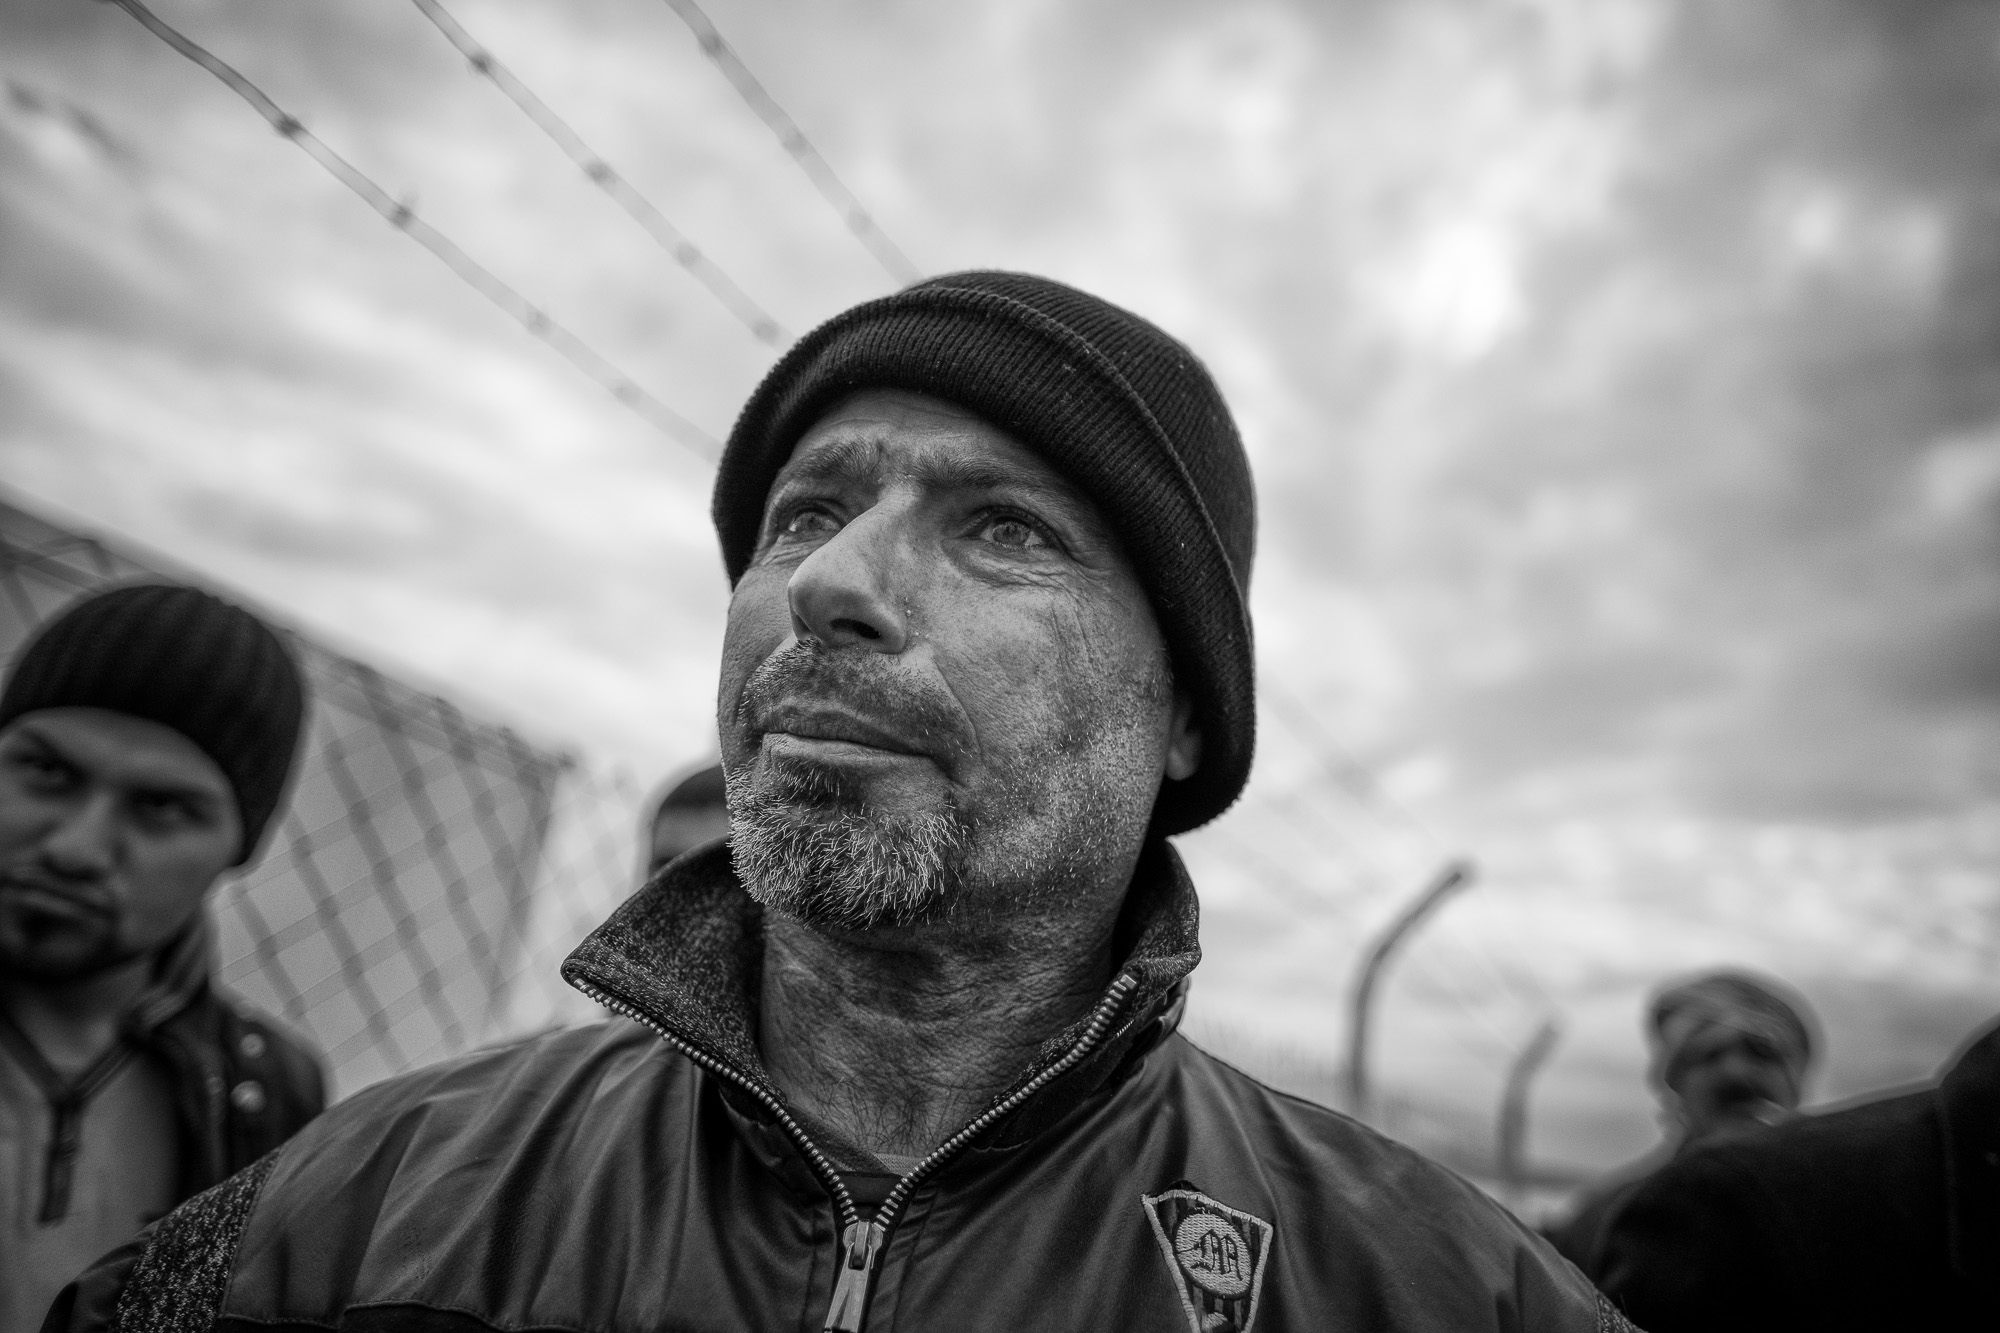 Mosul/Erbil, Iraq. December 2016    His eyes have seen too much    View the story >>